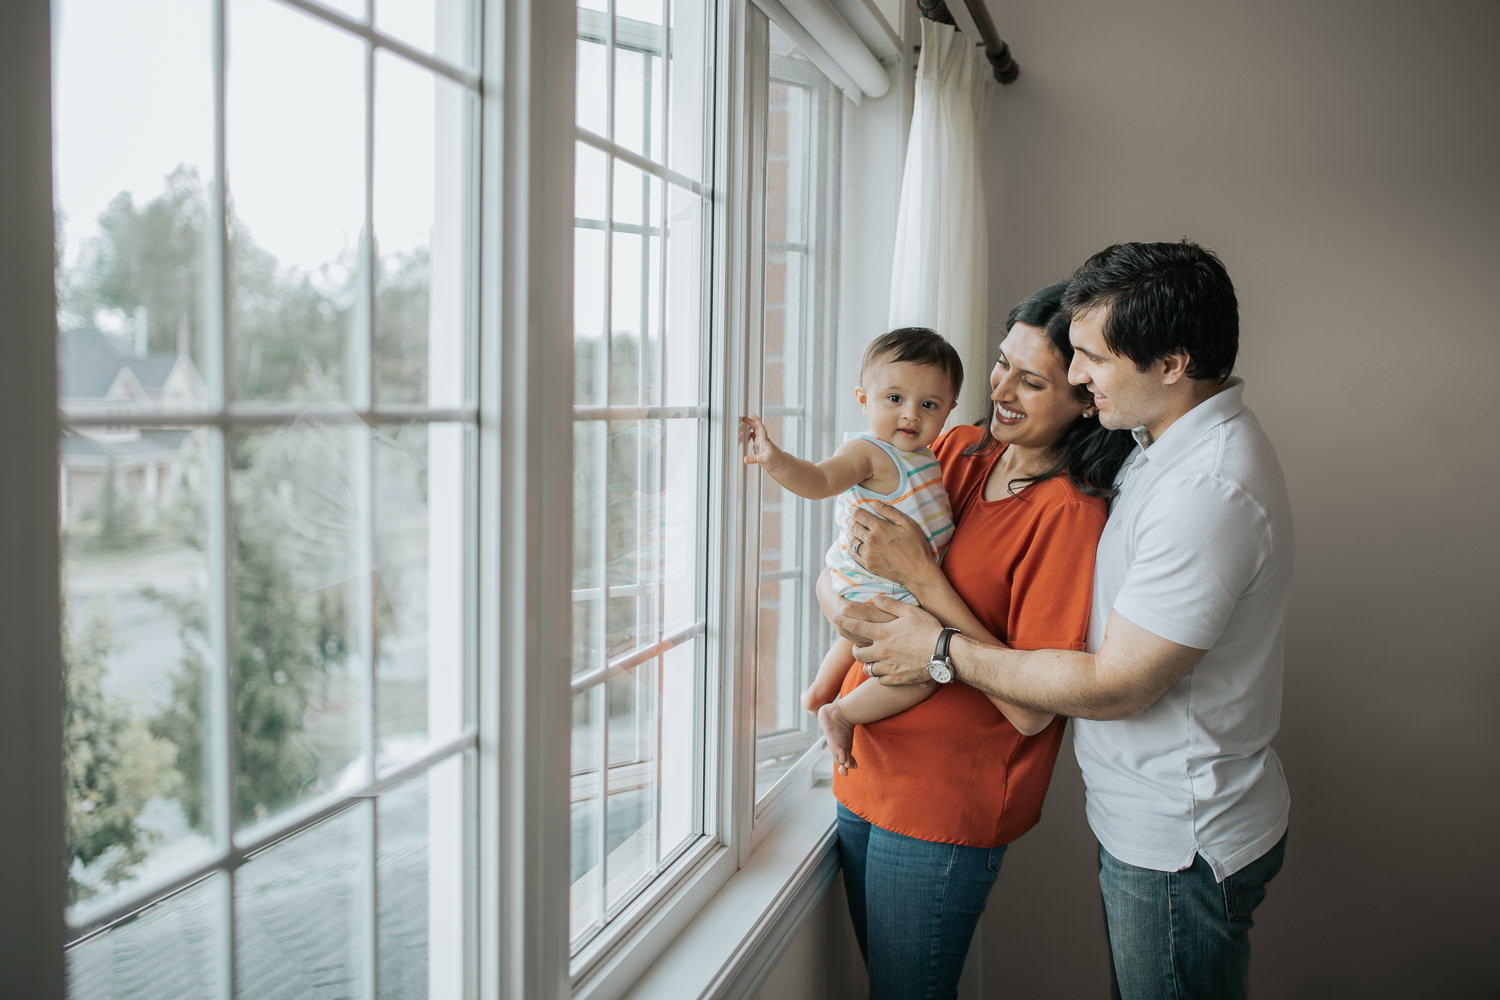 family of 3 standing at window, mom holding 8 month old baby boy - Markham Lifestyle Photos